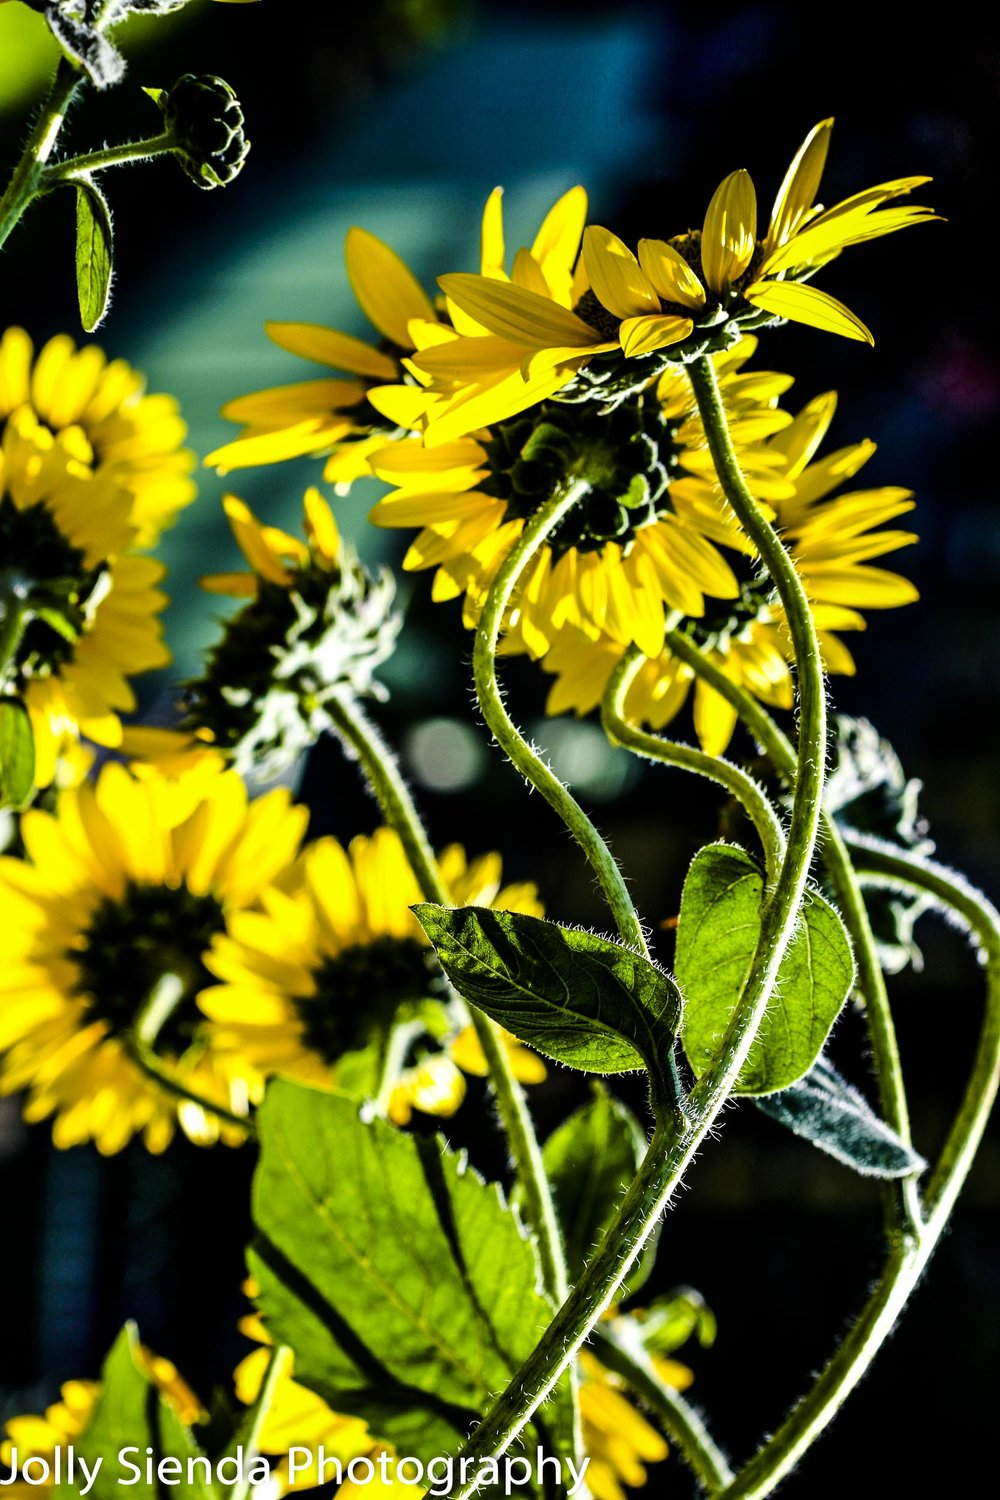 Sunflowers dance in the sunlight